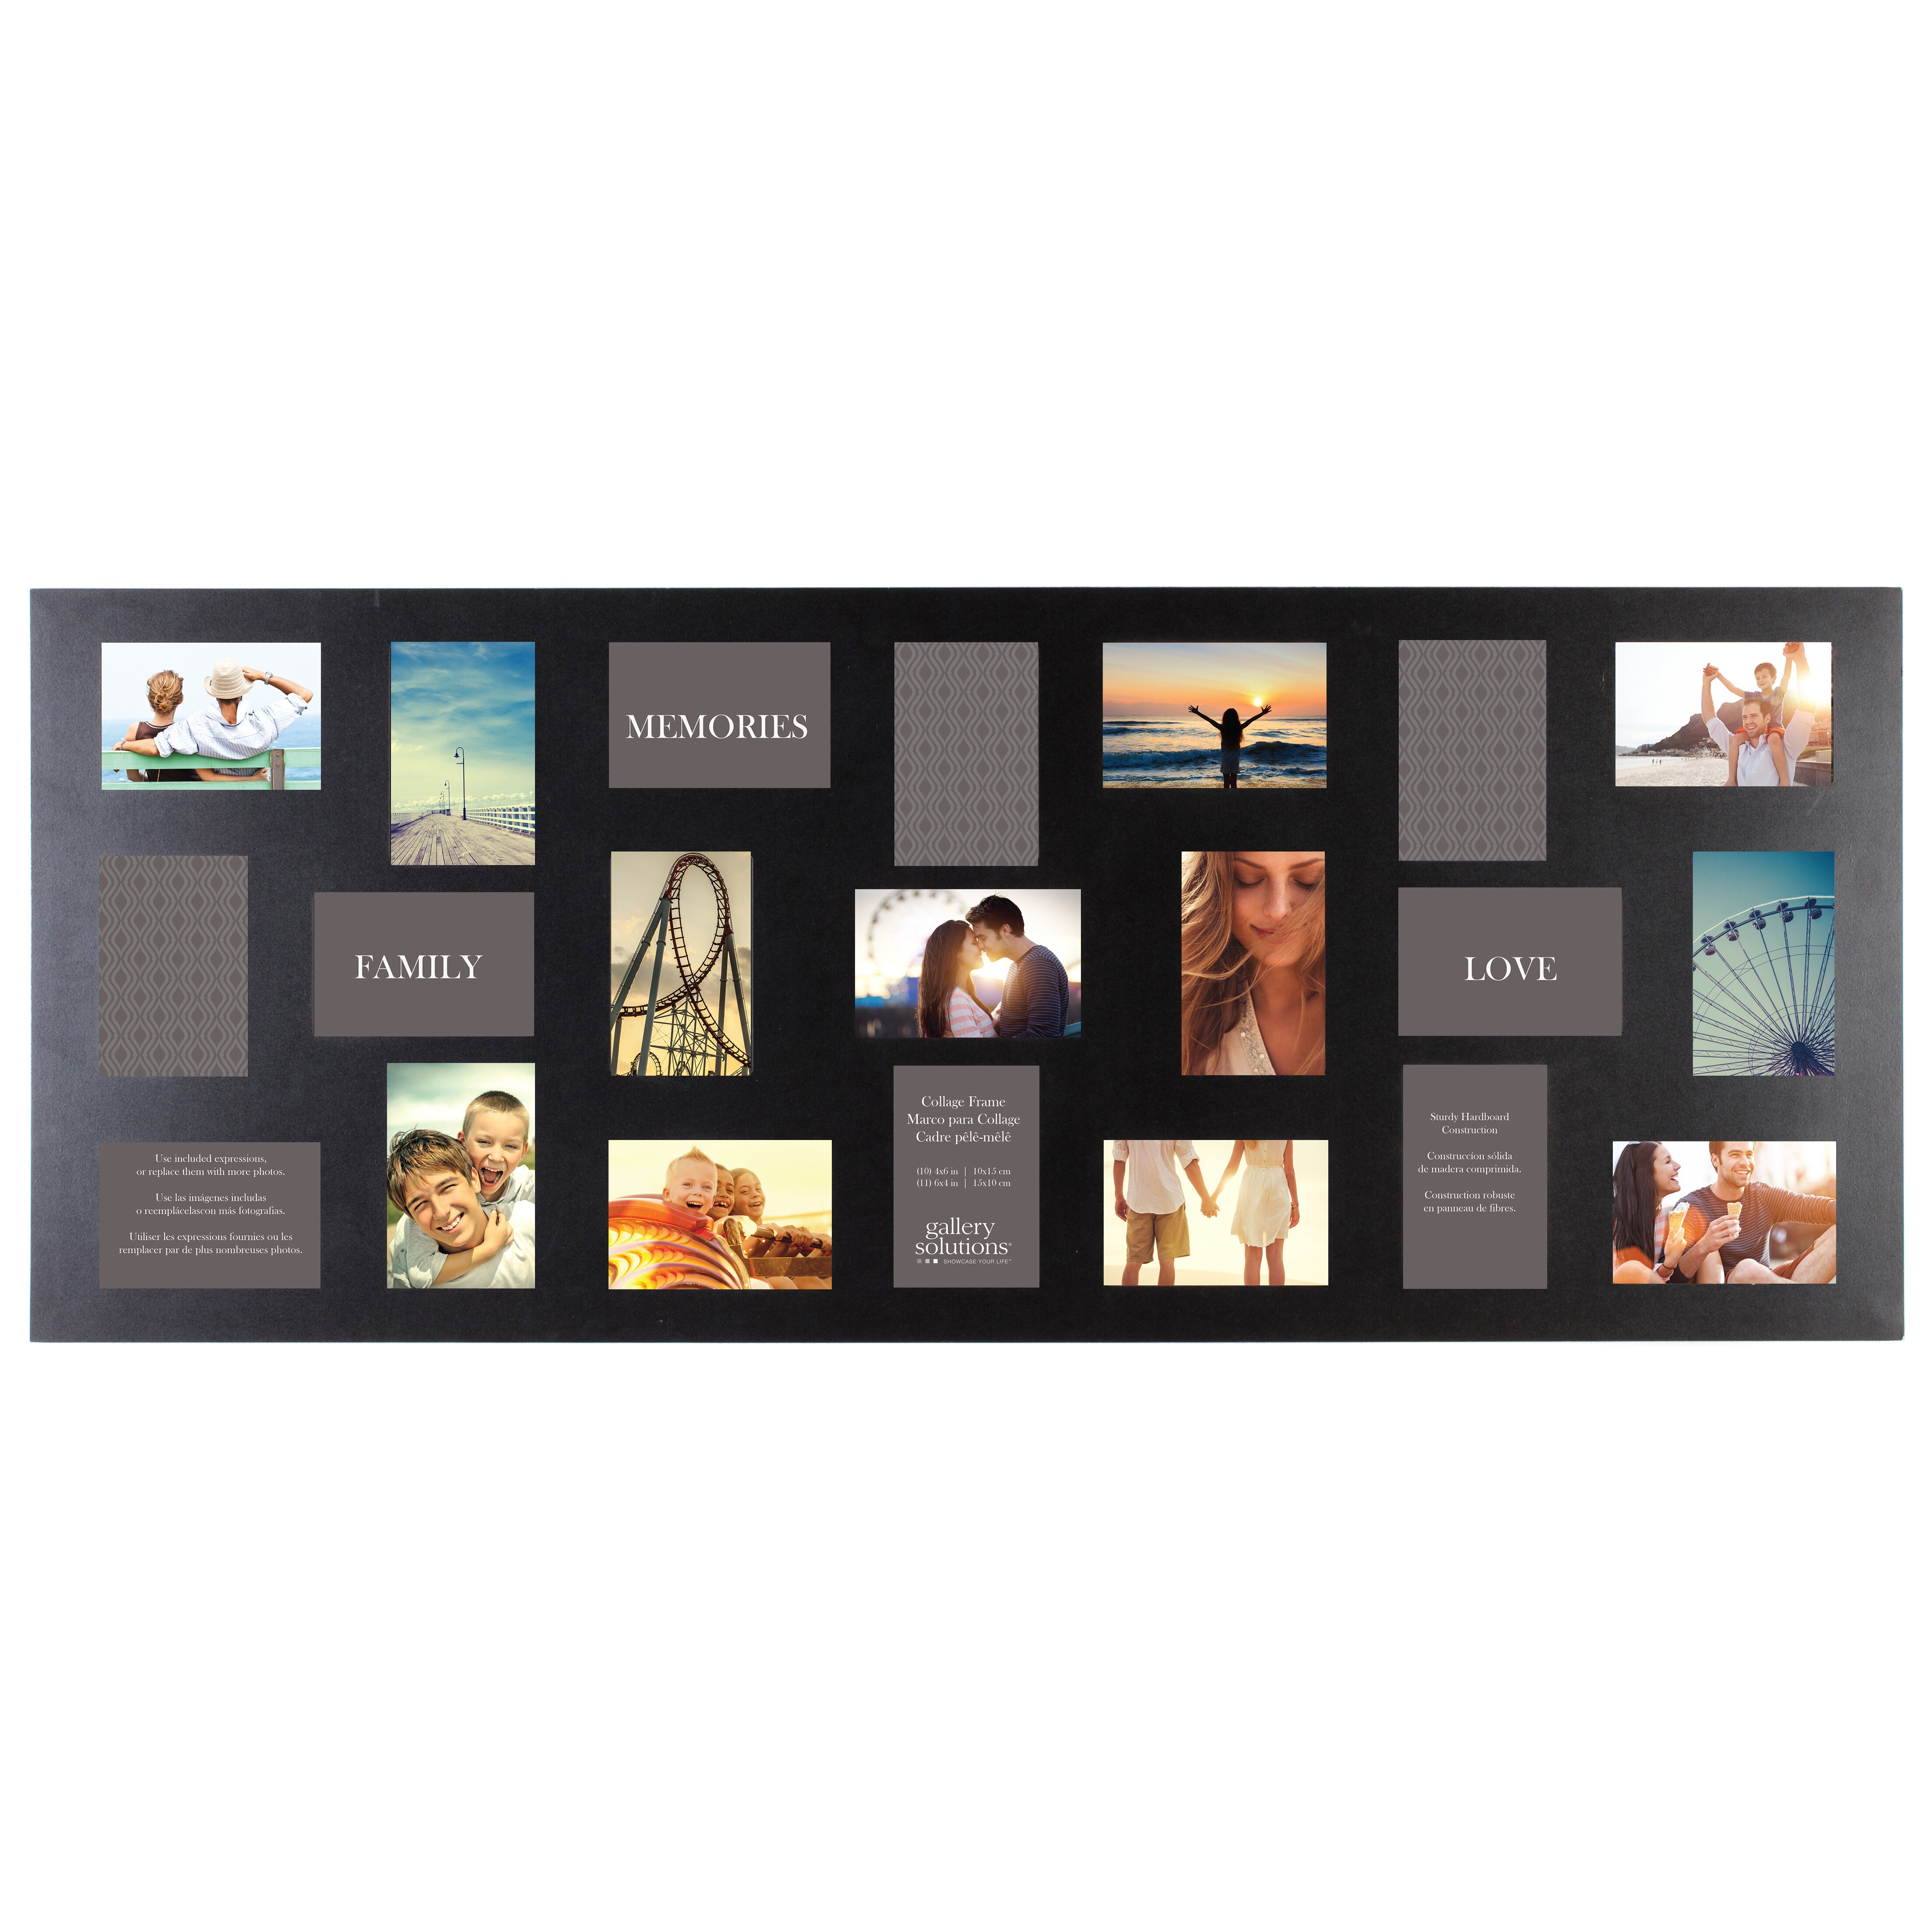 NielsenBainbridge Gallery Solutions 21 Opening Collage Picture Frame Re